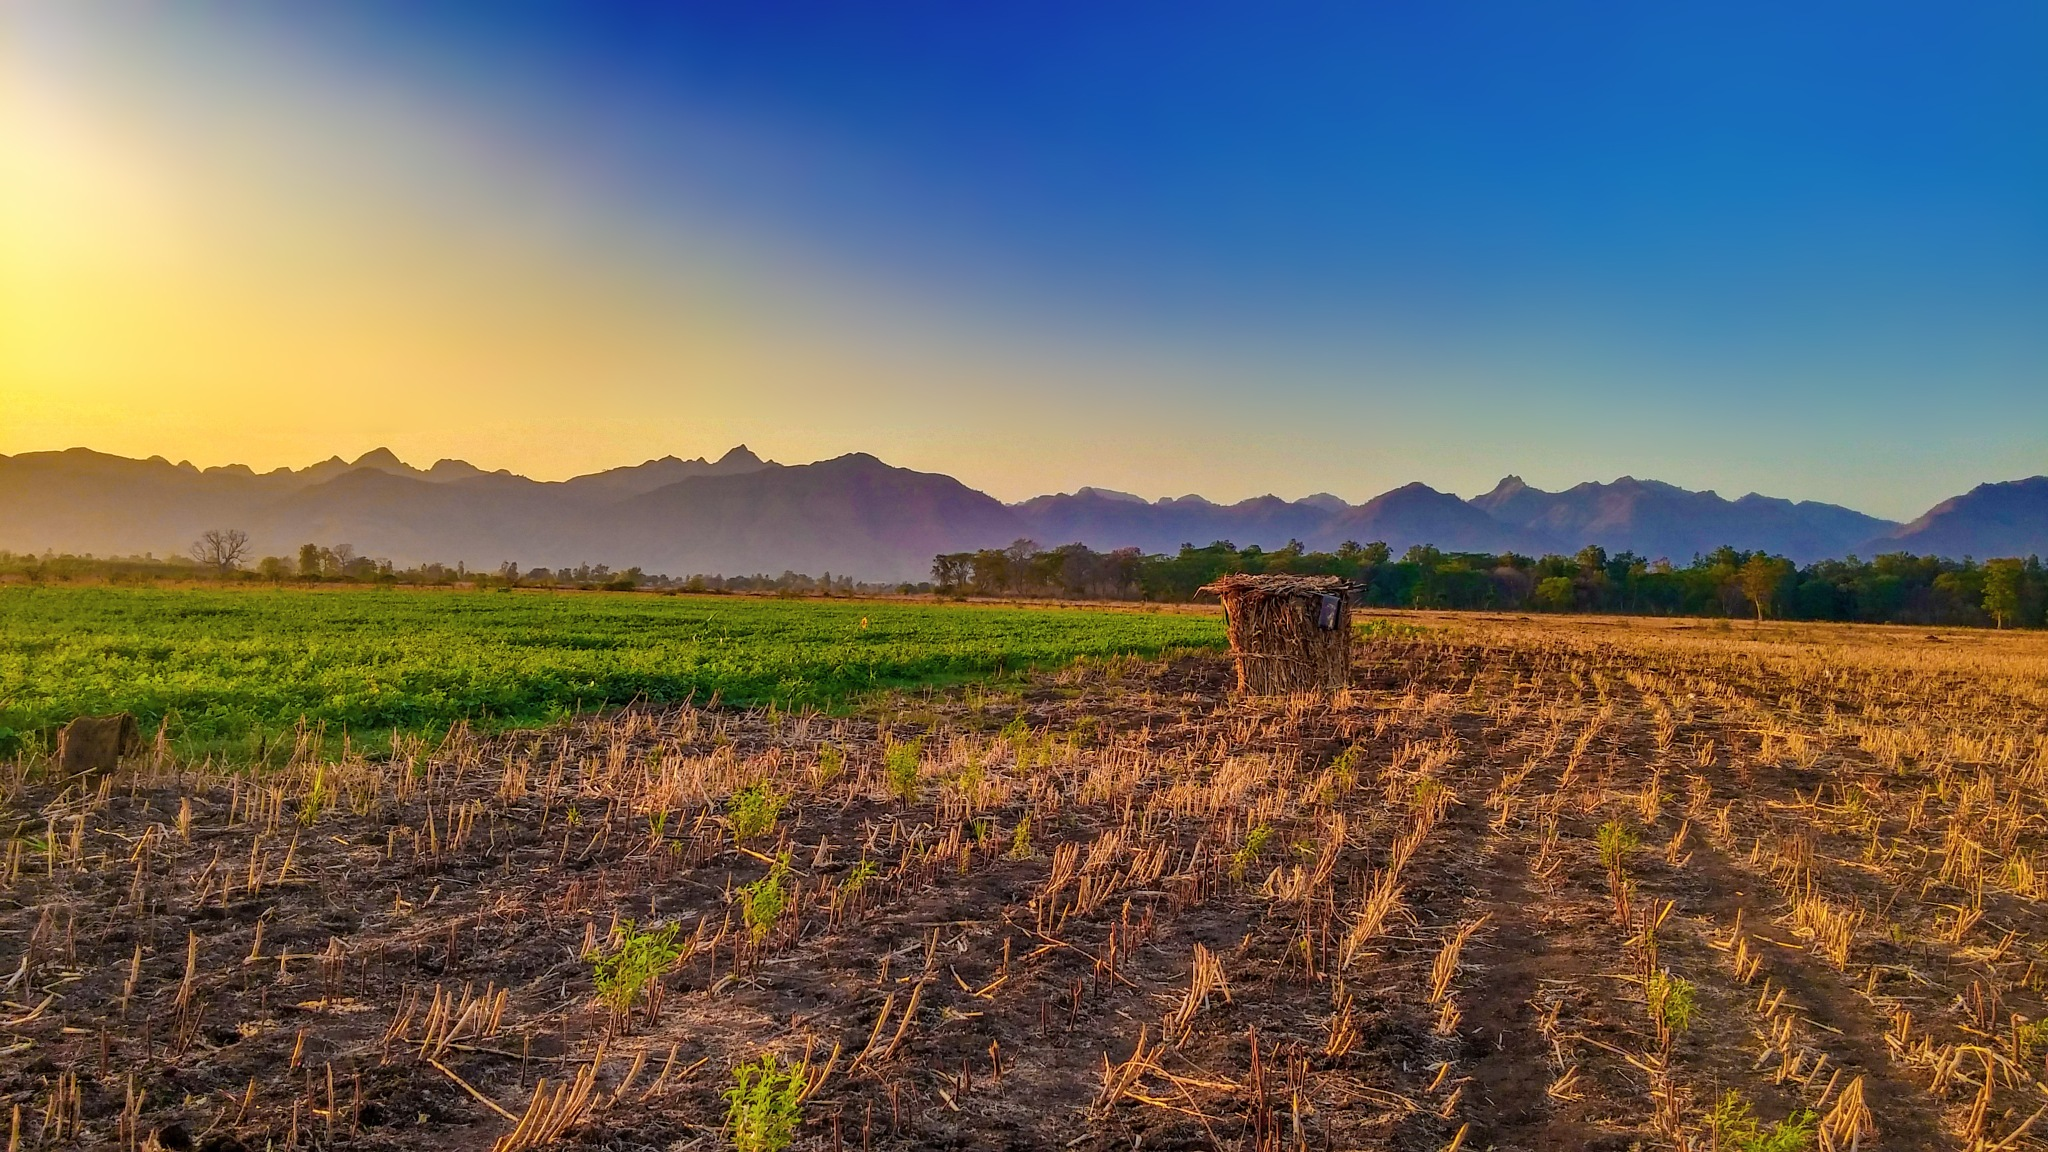 Scenic view of agricultural field at sunset by Shaikh Mubashir